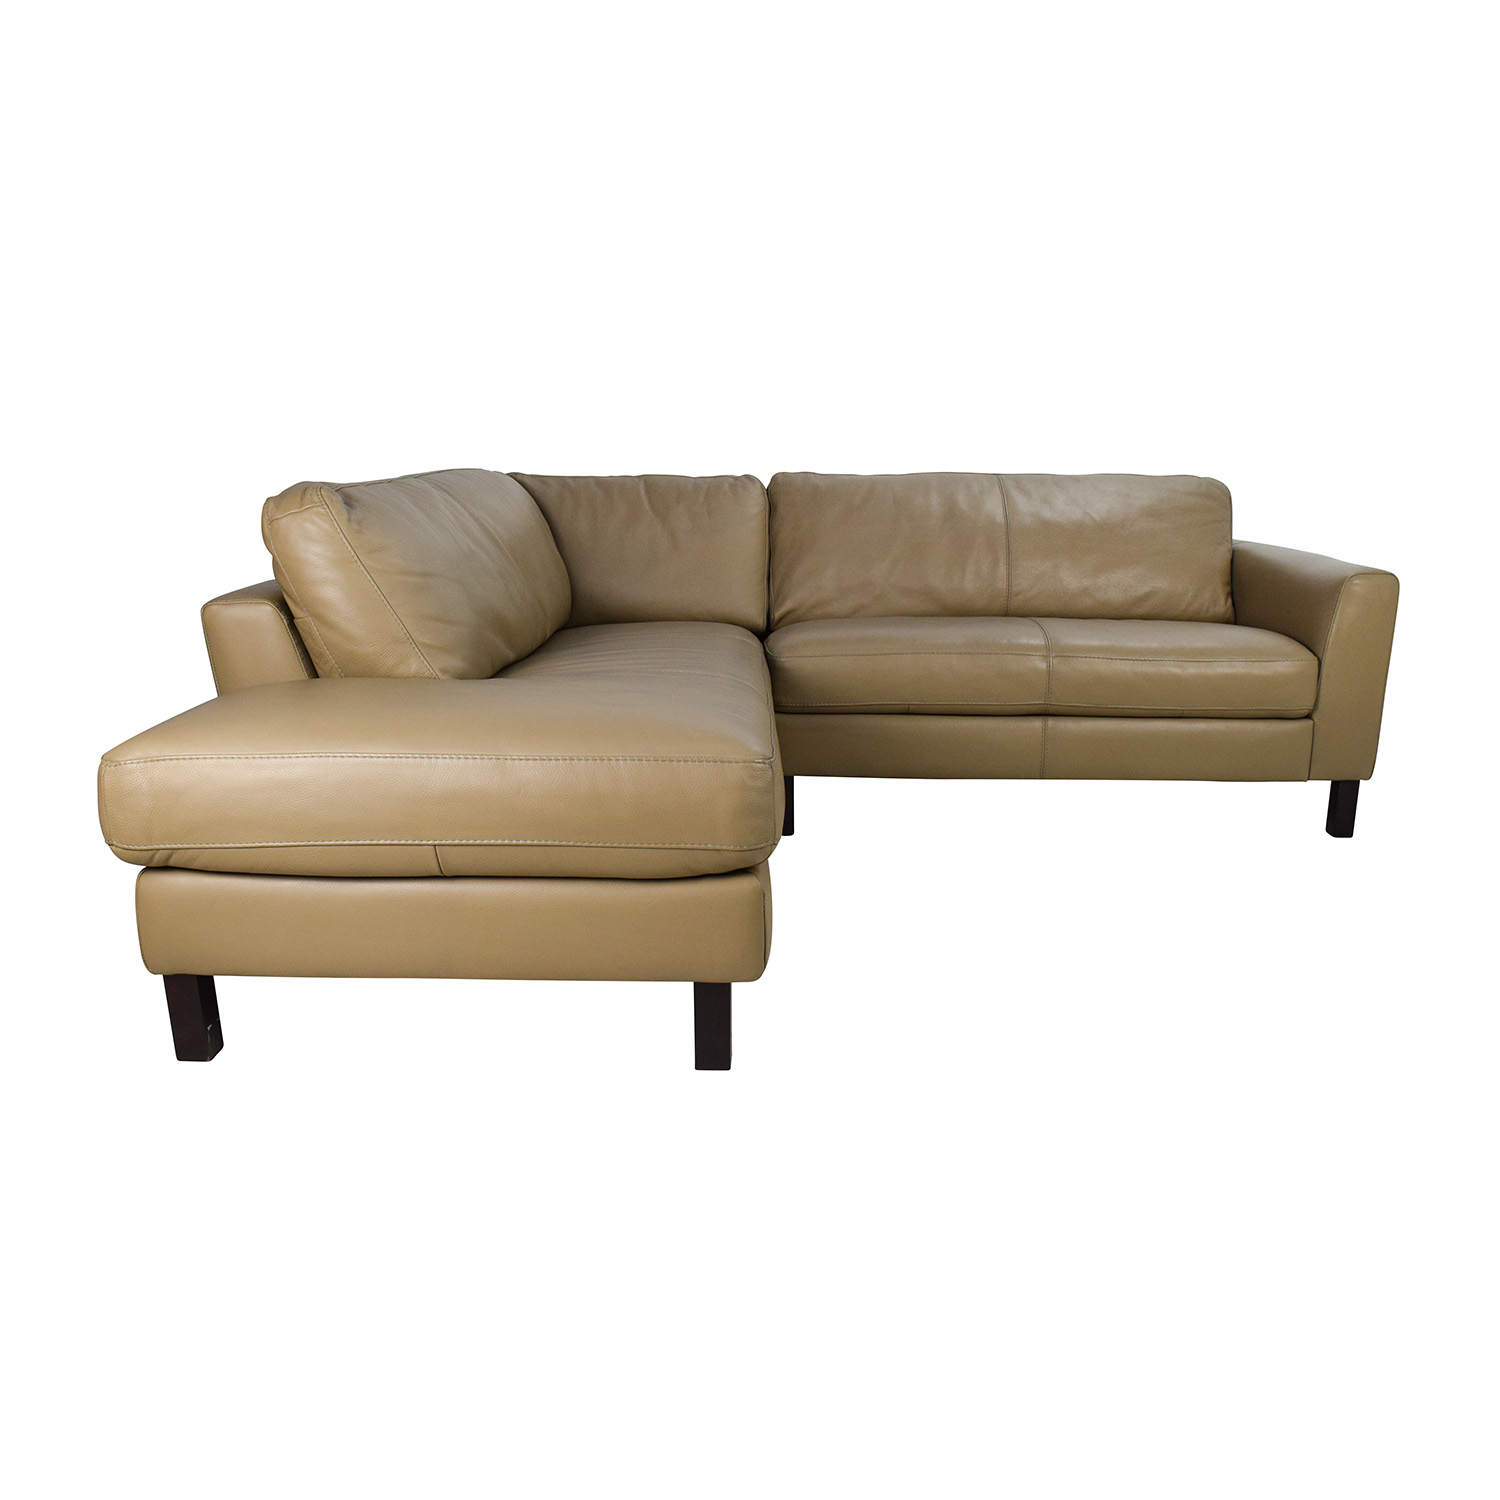 Used sofas sale for Used leather sofa set